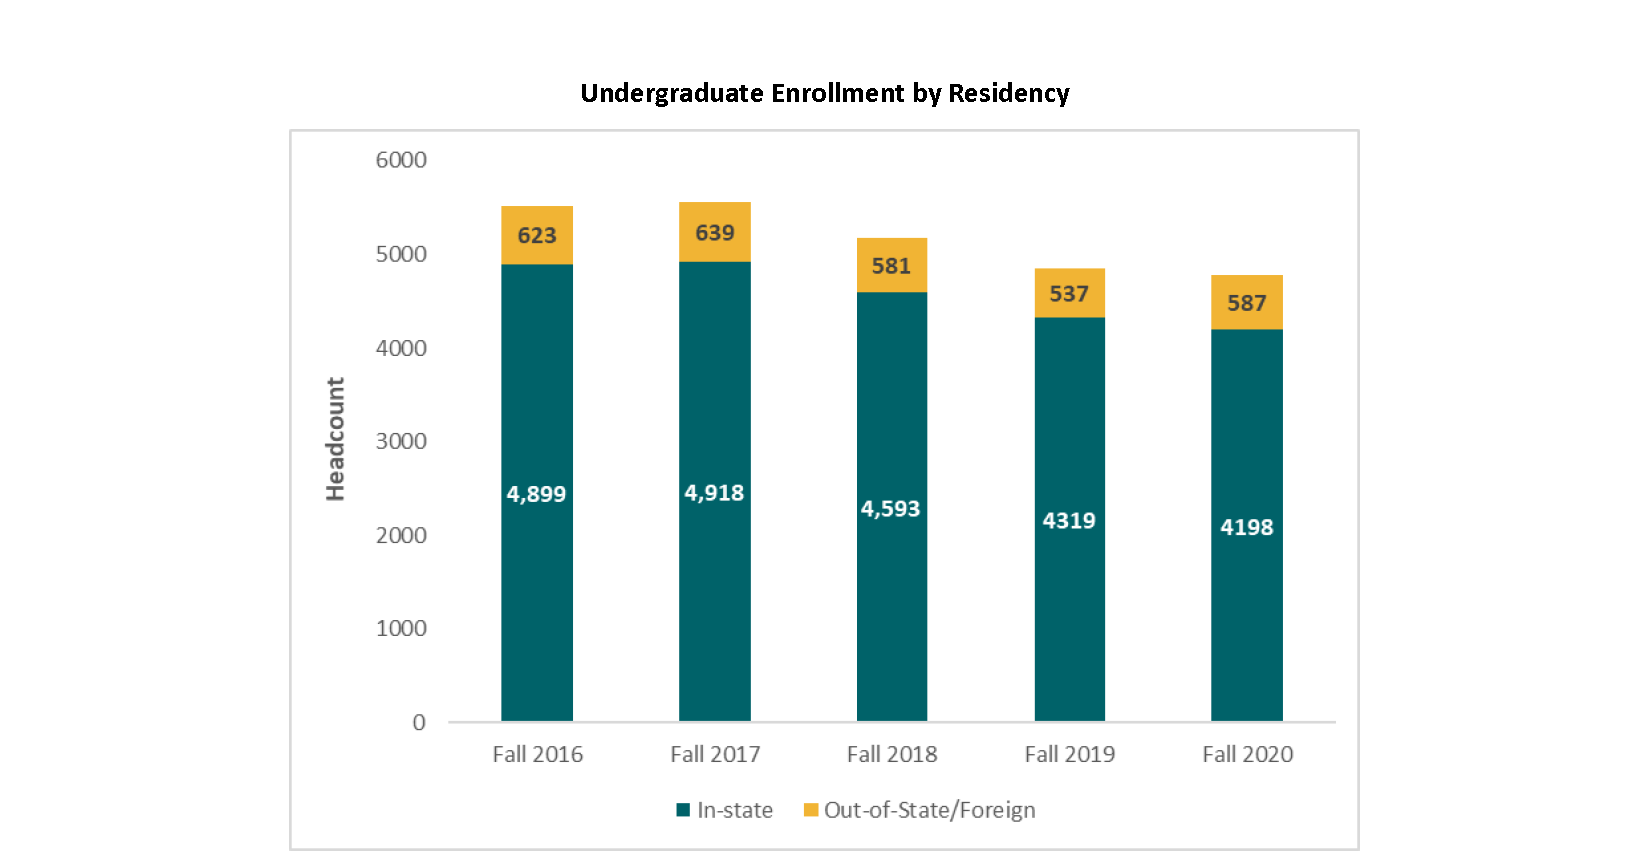 Undergraduate Enrollment by Residency